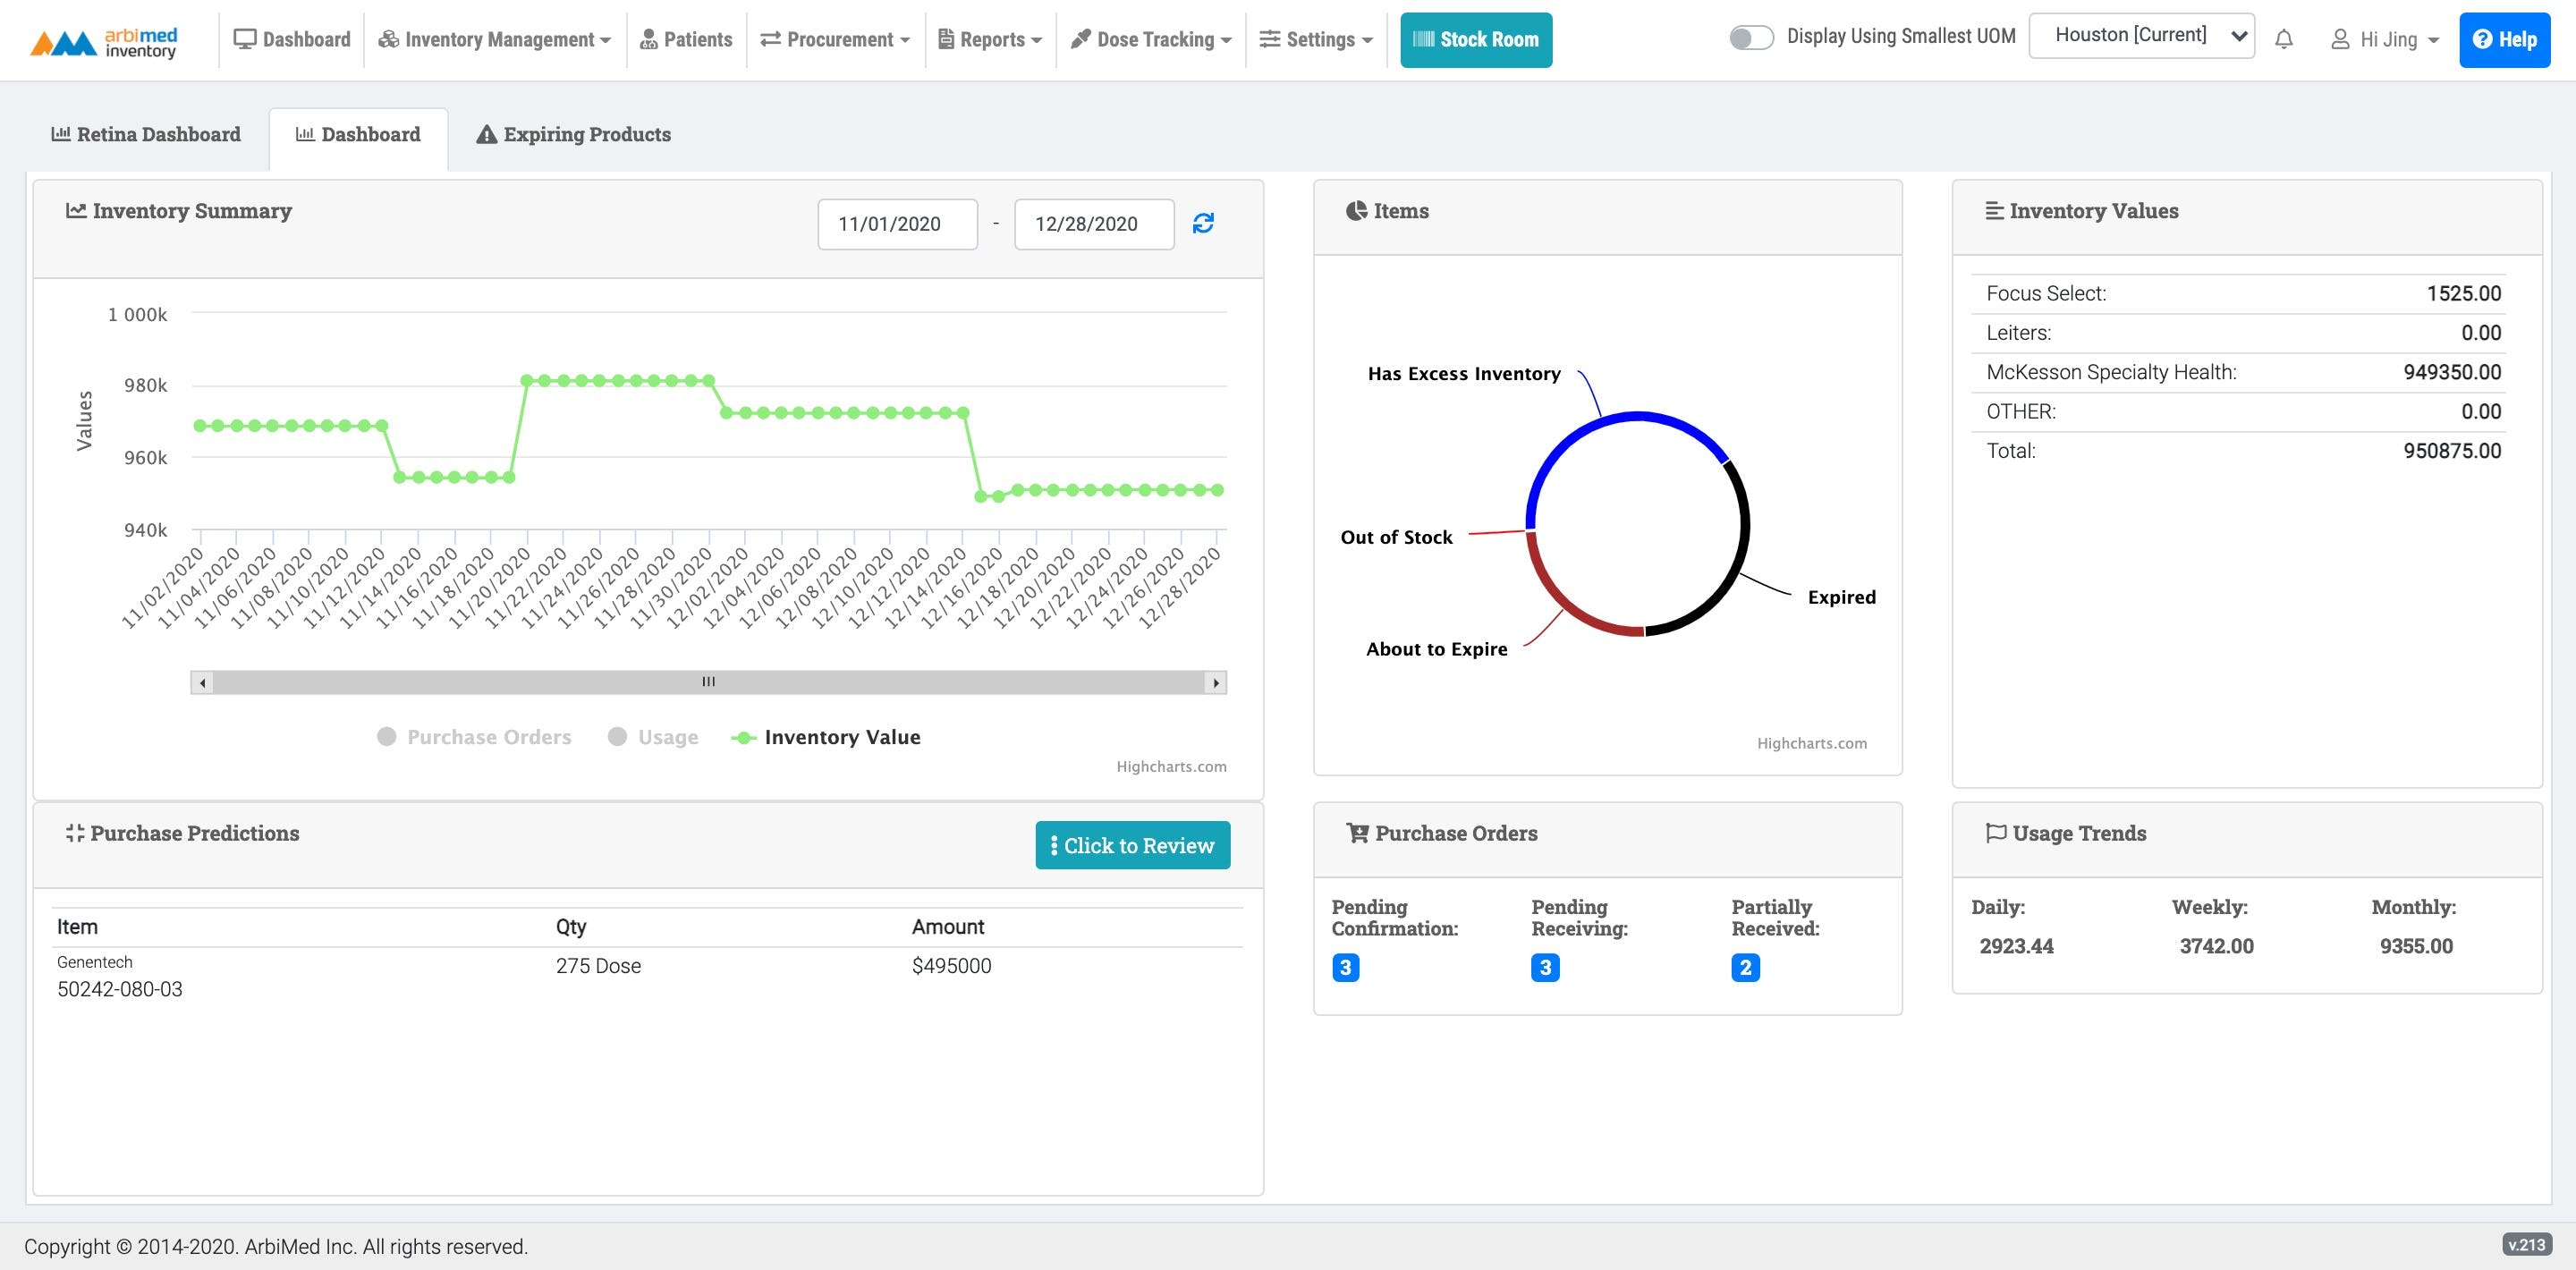 ArbiMed Inventory Software - Dashboard - Review your important inventory information in one place.